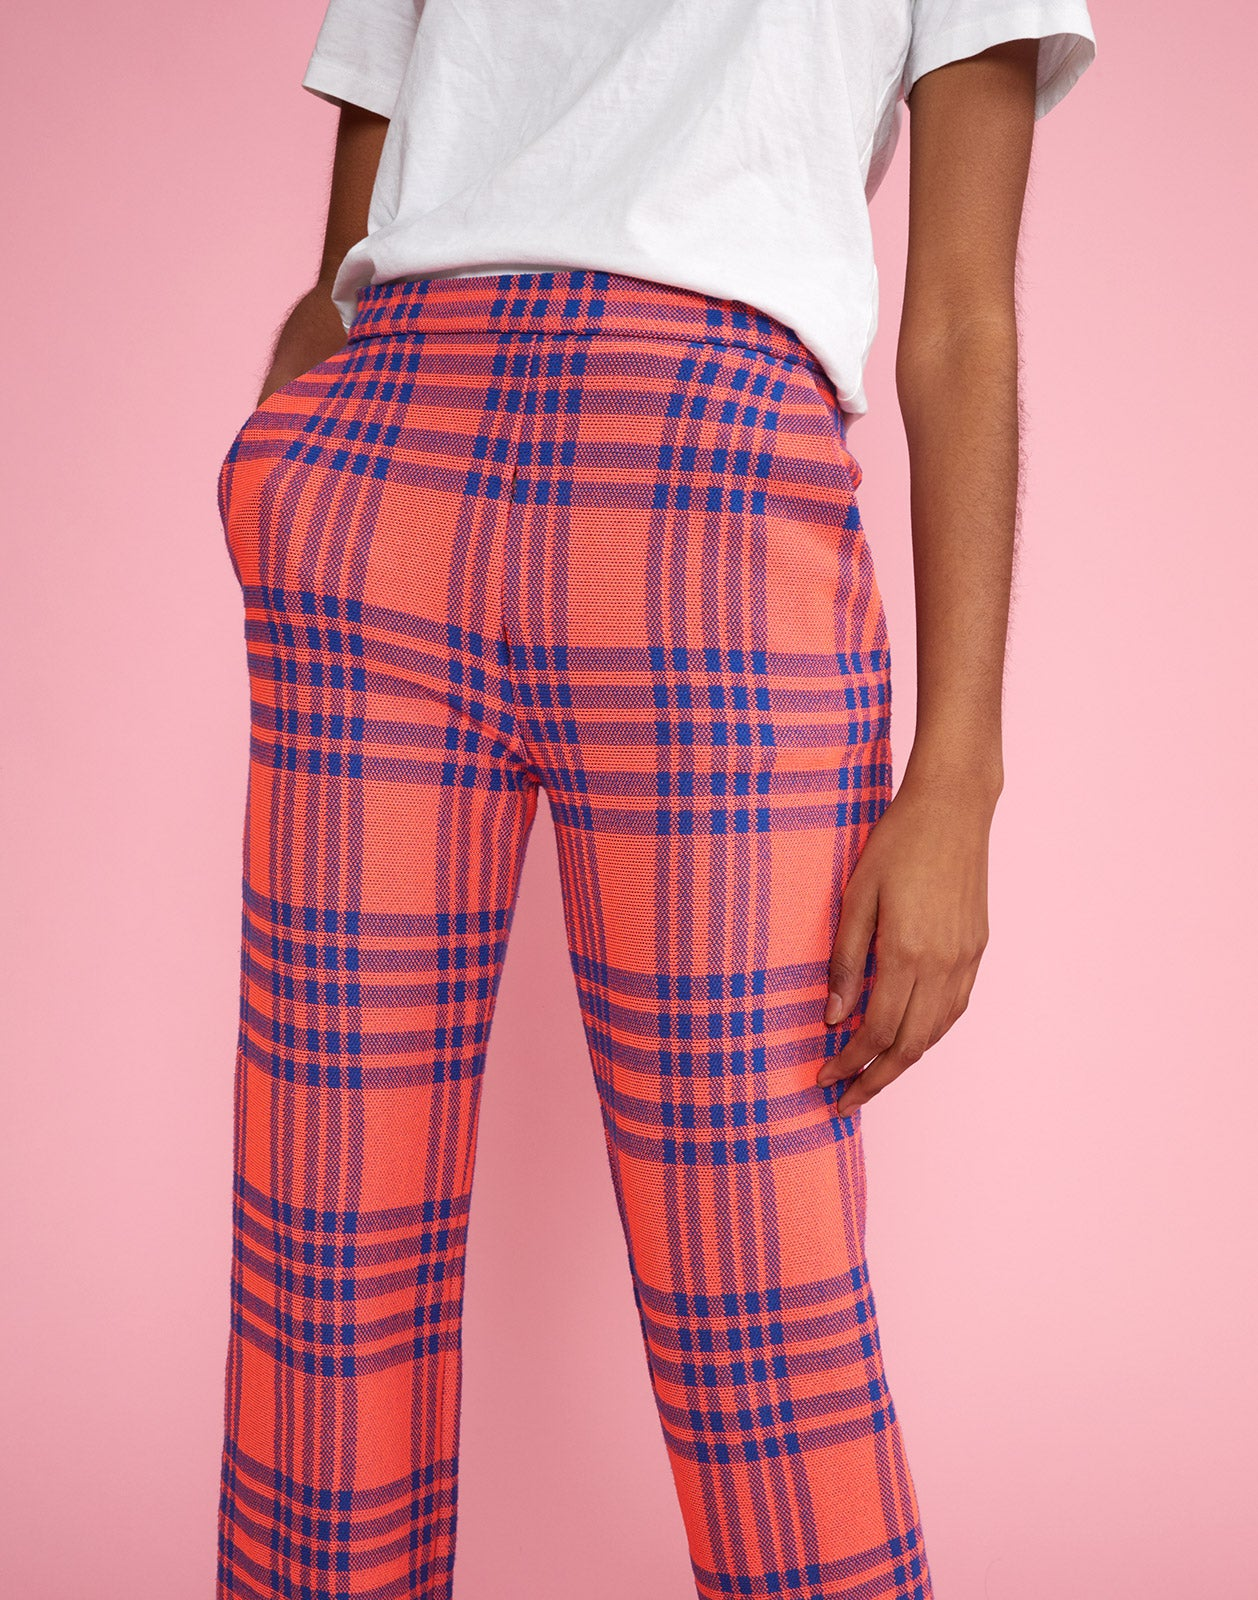 Close front view of model wearing Carson stretch plaid pants.